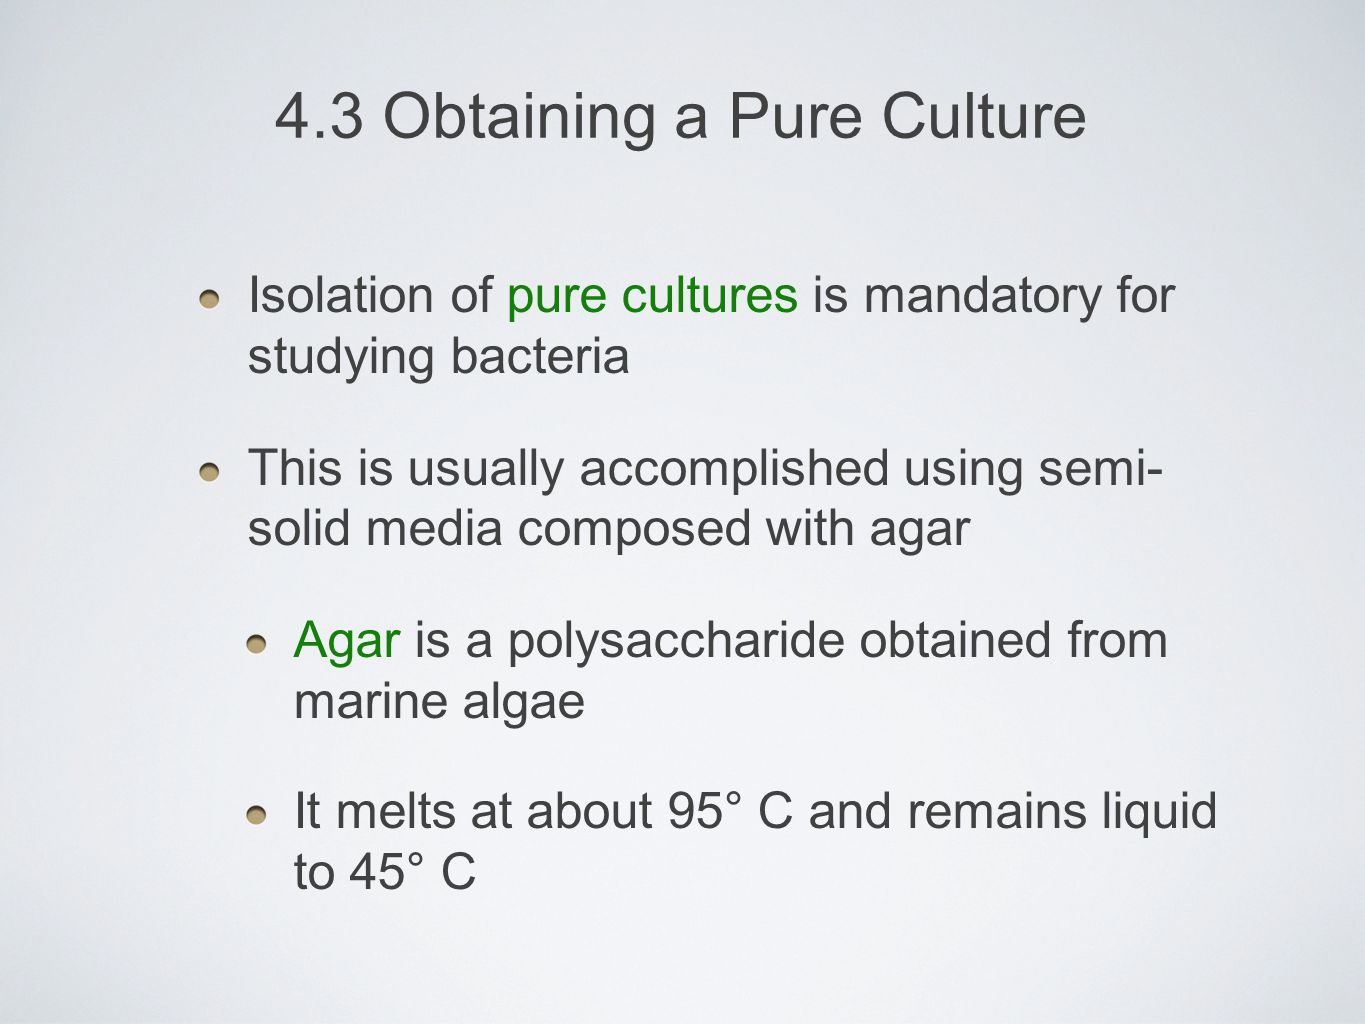 4.3 Obtaining a Pure Culture